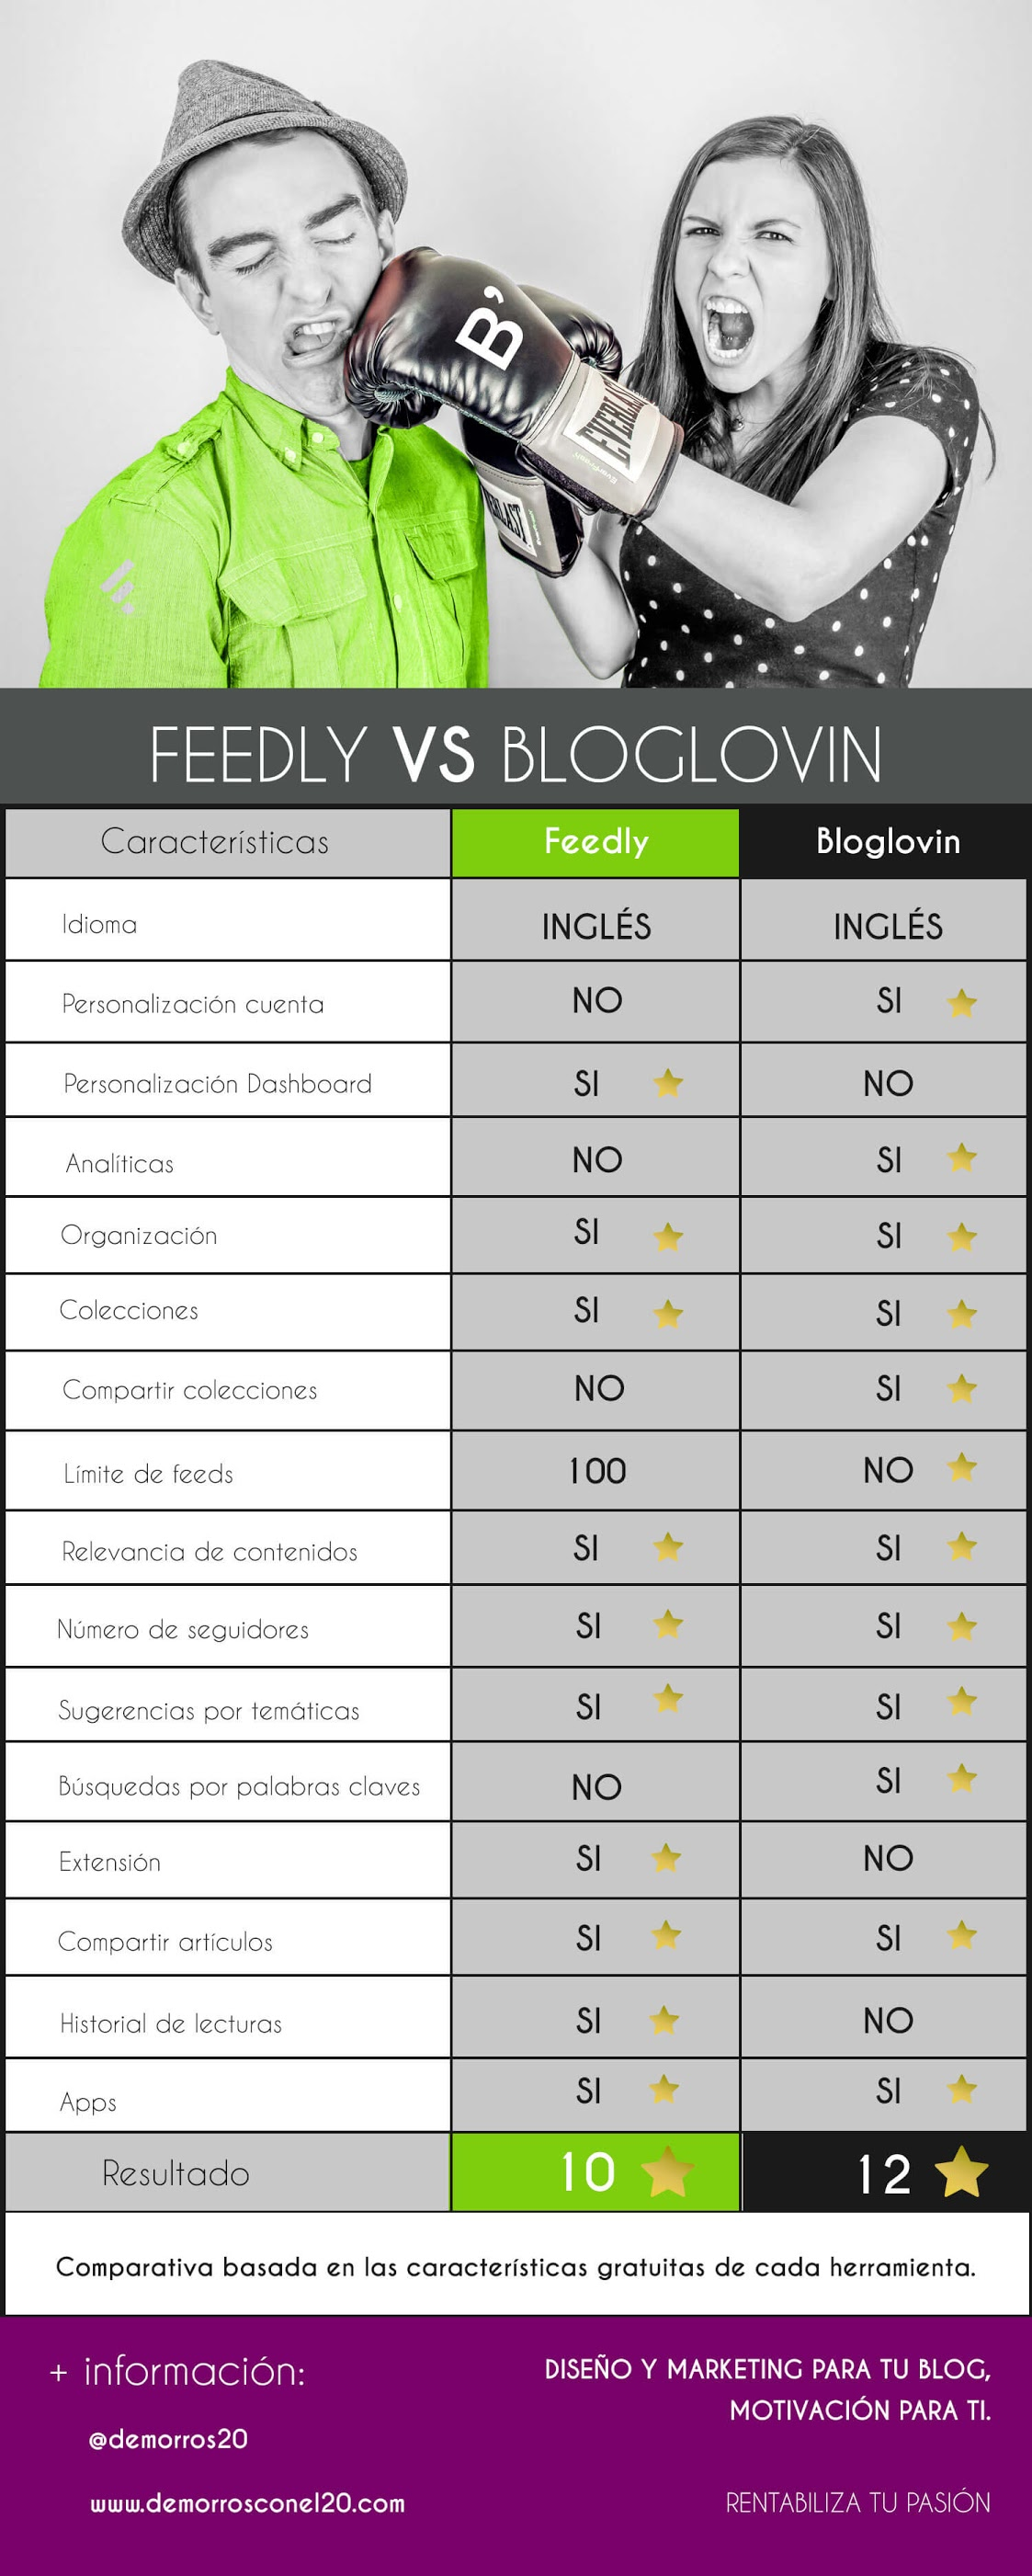 feedly-vs-bloglovin-infografia